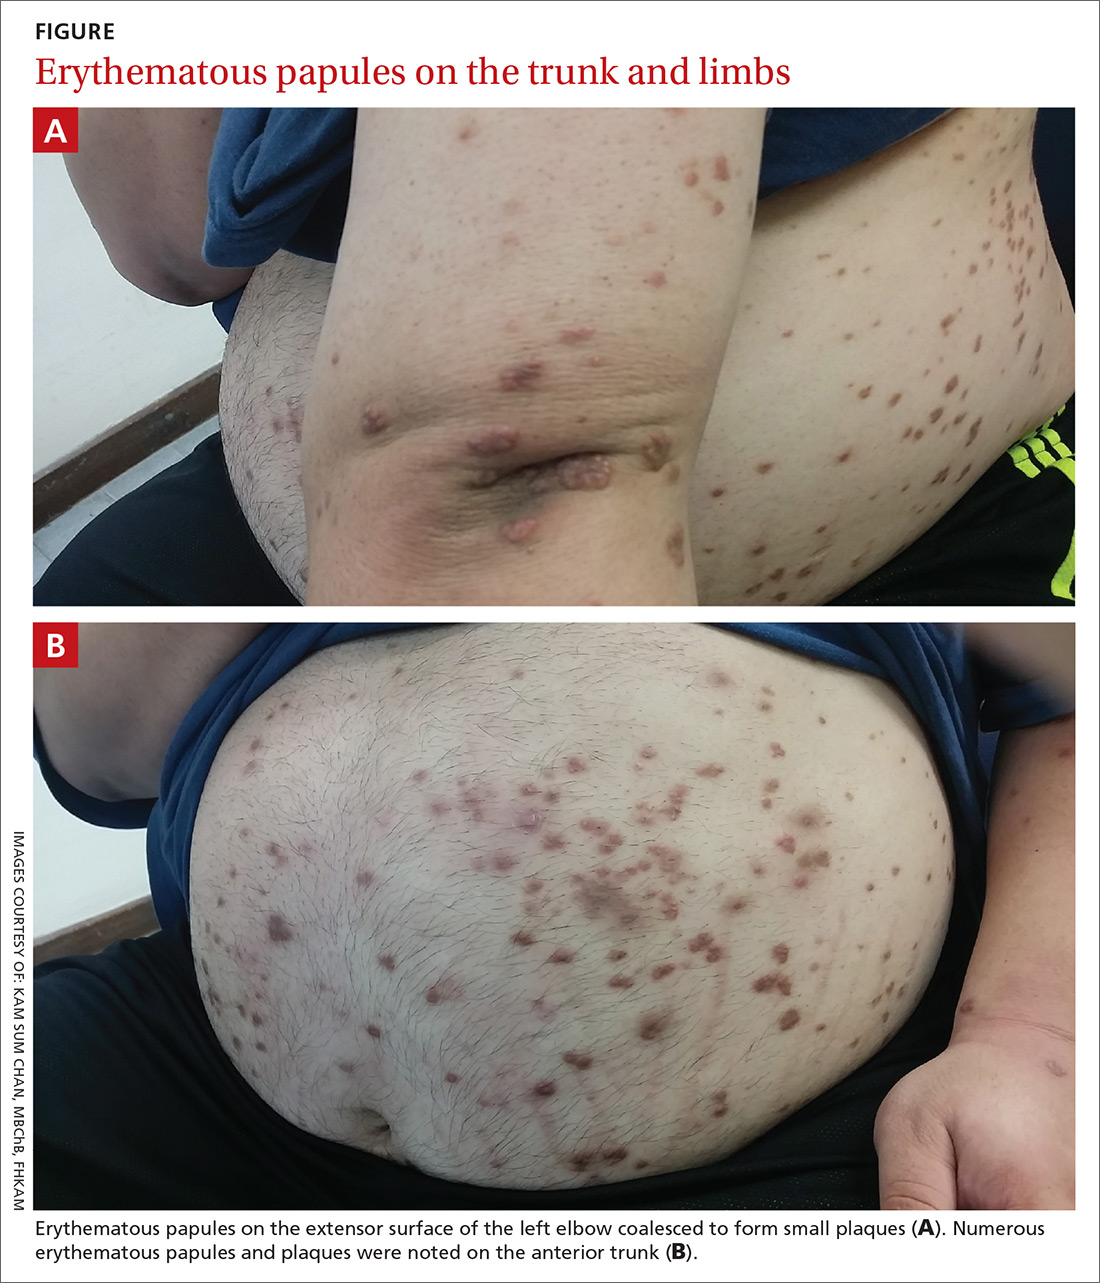 Erythematous papules on the trunk and limbs